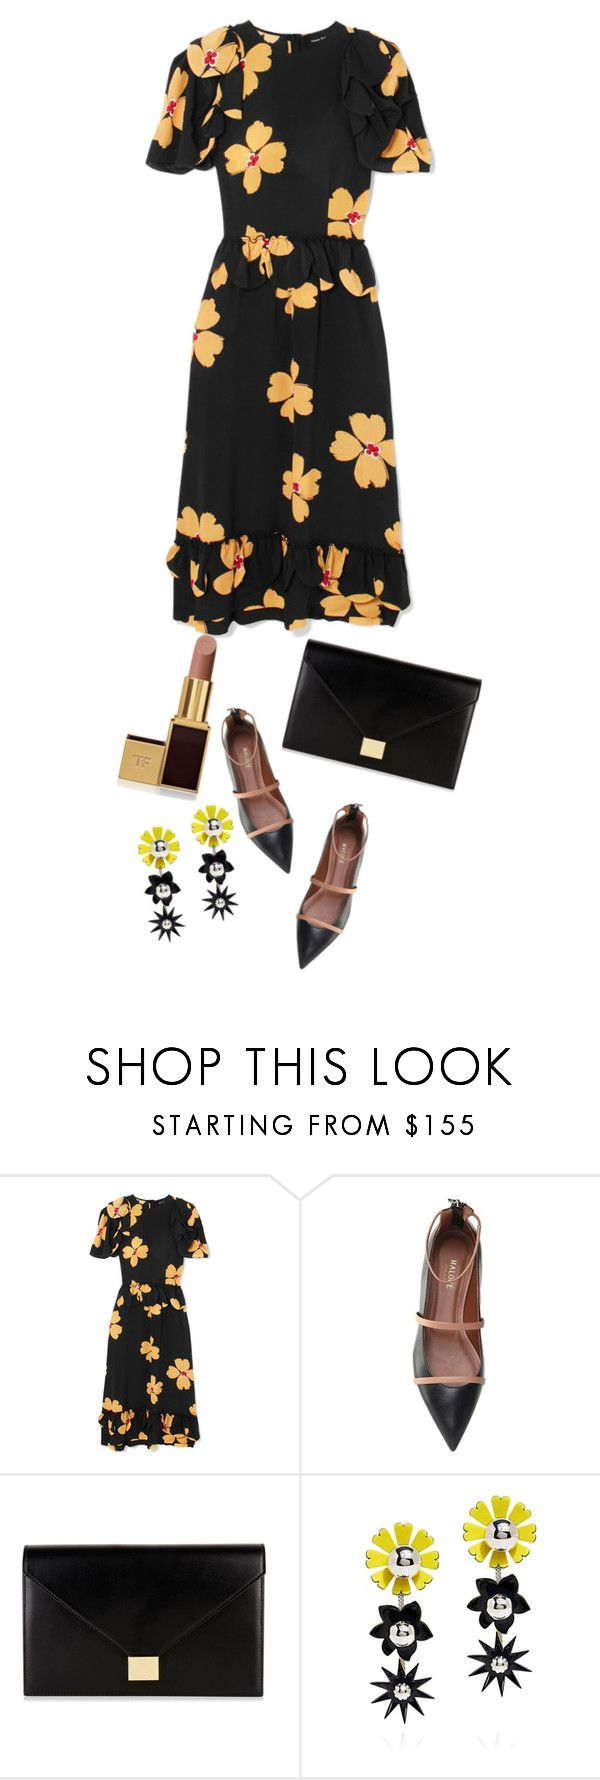 """""""Untitled #300"""" by shinrashuya ❤ liked on Polyvore featuring Simone Rocha, Malone Souliers, Victoria Beckham, Kenzo and Tom Ford"""